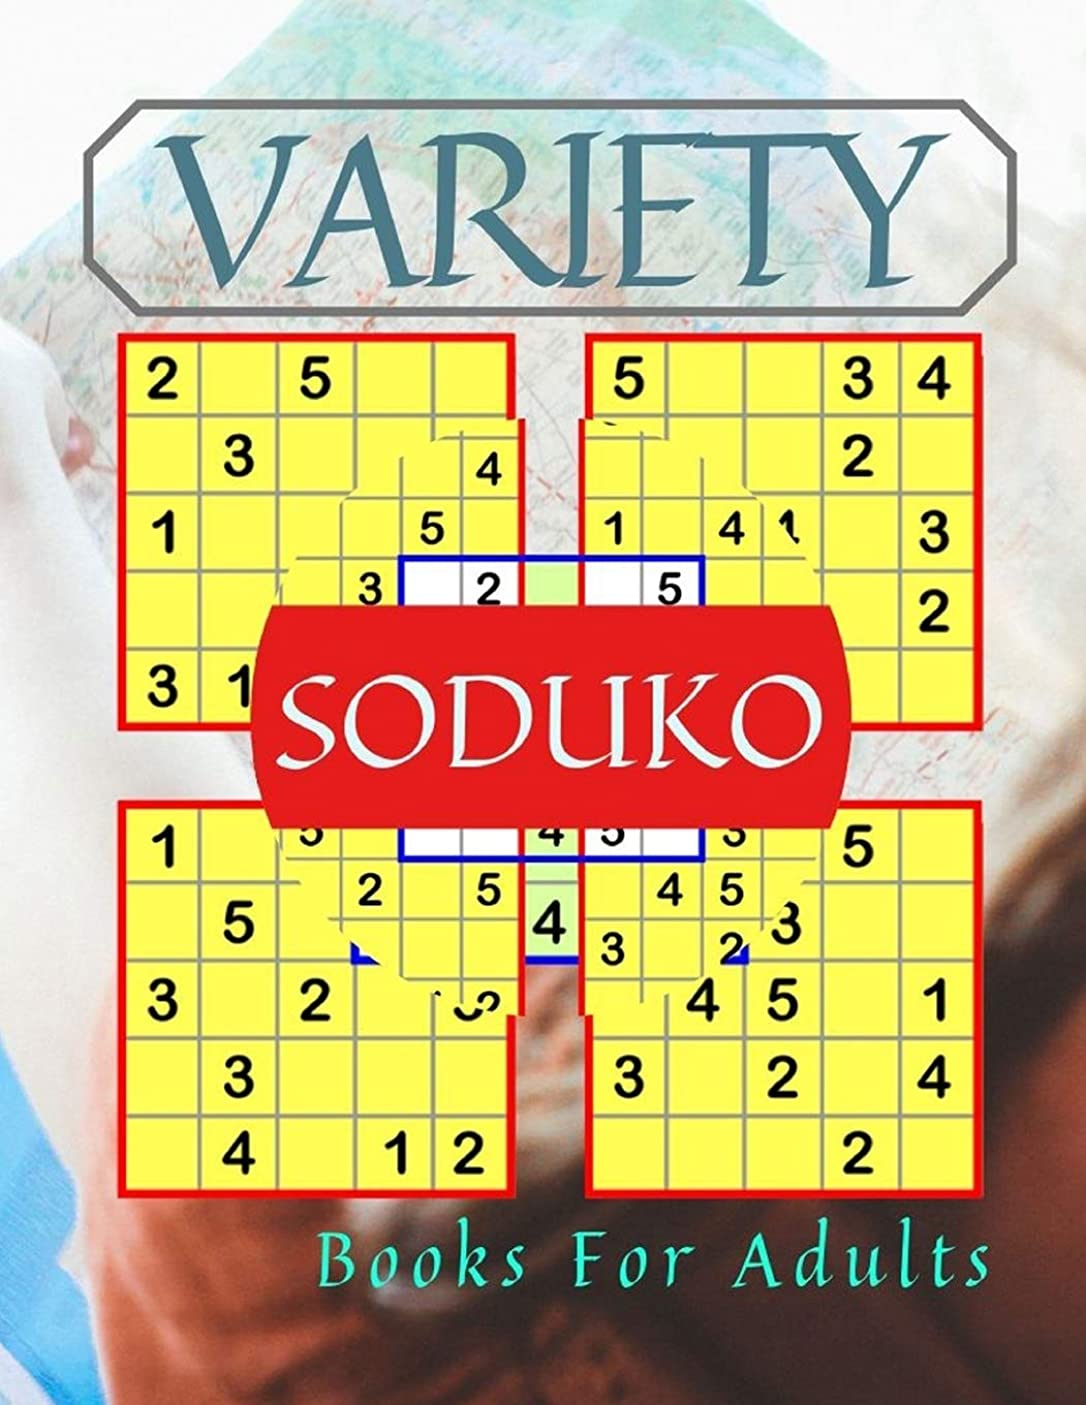 Variety Soduko Books For Adults: Suduko Paperback Portable, Puzzles Of Beginner Level Good Practice For A Starter! EASY LEVEL, Saduku Puzzle Books for Beginners.